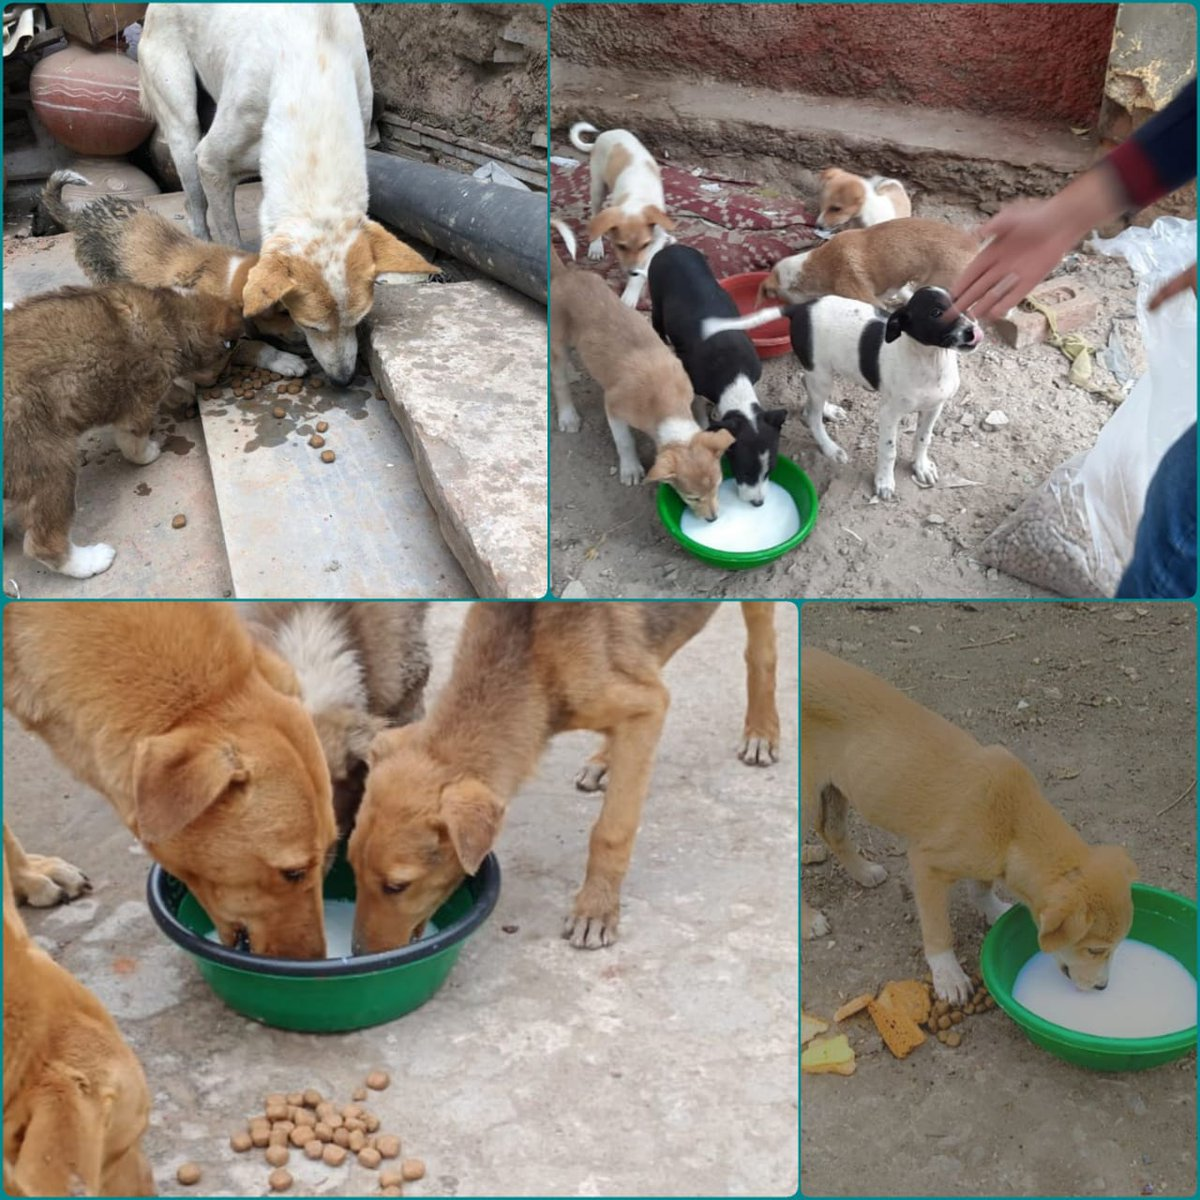 Replying to @TweetsoKhaja: RT @SRKUniverse: SRK FANs from Udaipur celebrated  #MakarSankranti by distributing food  to animals and also by distributing snacks & biscuits to poor children 🙏🏻♥️